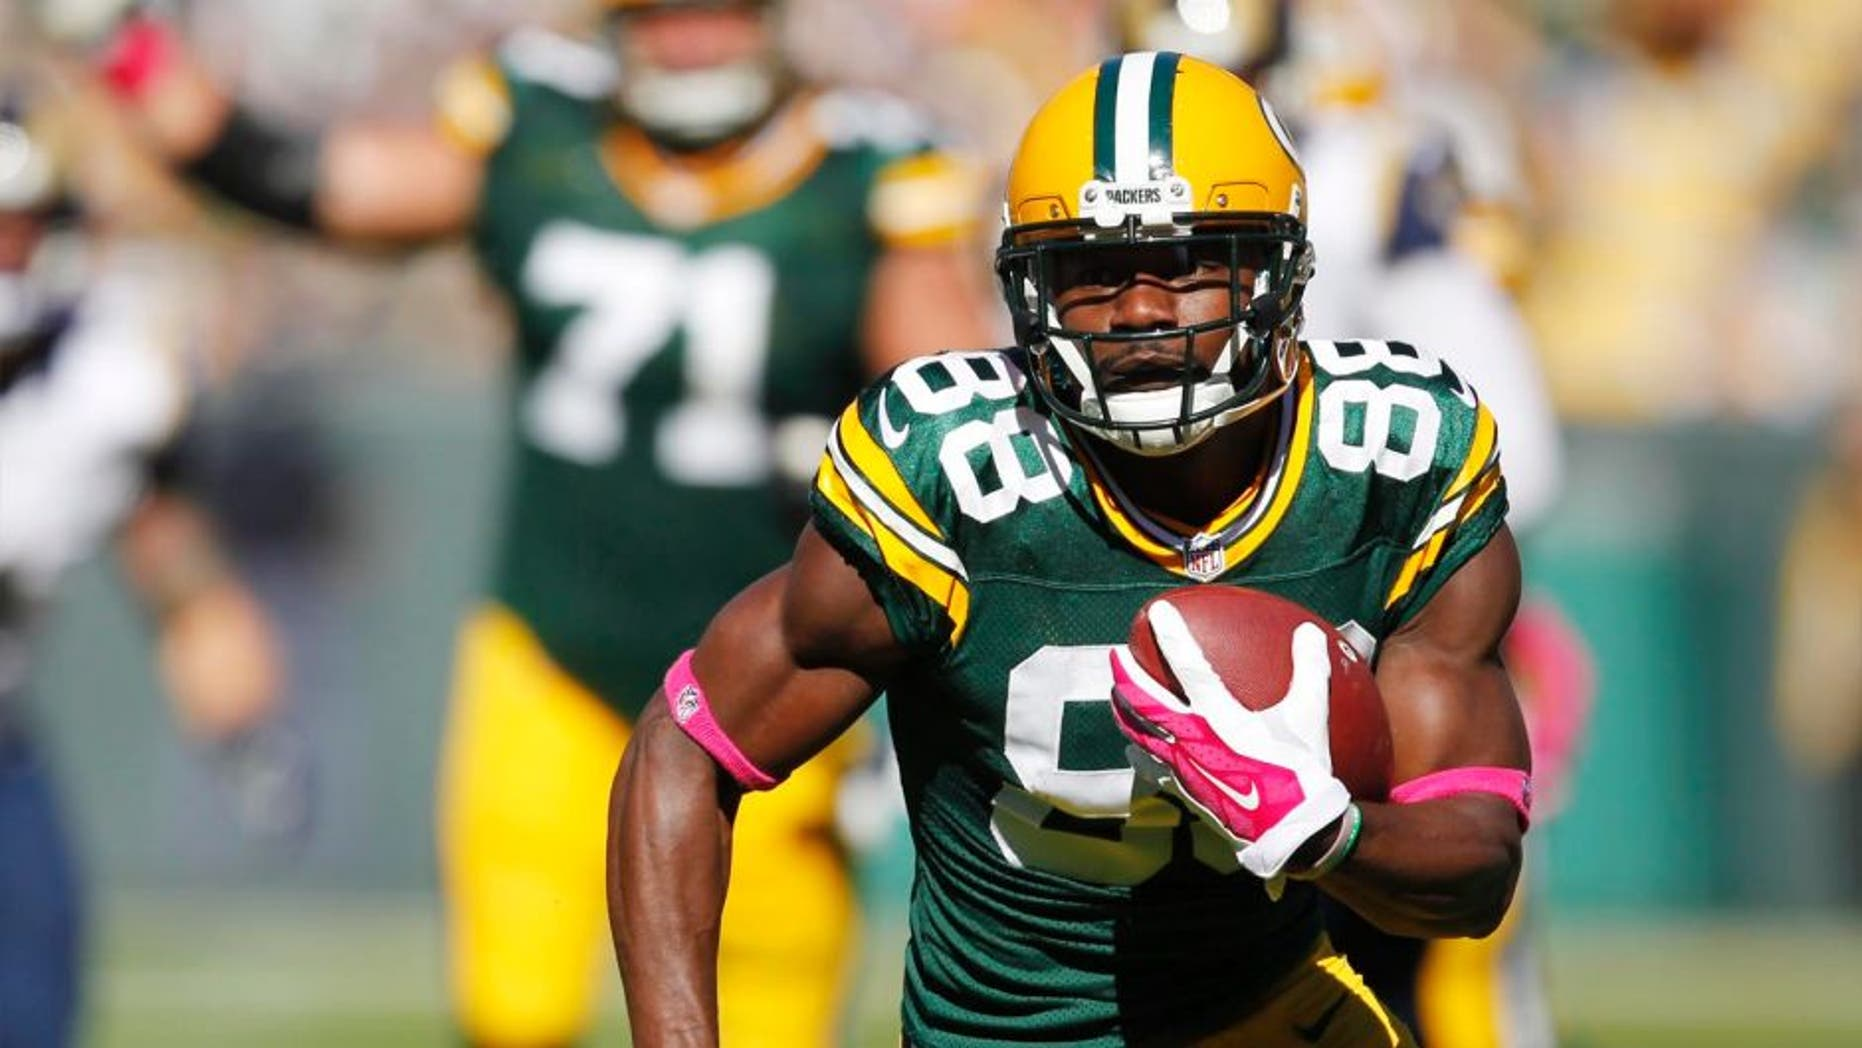 The Green Bay Packers' Ty Montgomery catches a touchdown pass during the first half against the St. Louis Rams on Sunday, Oct. 11, 2015, in Green Bay, Wis.